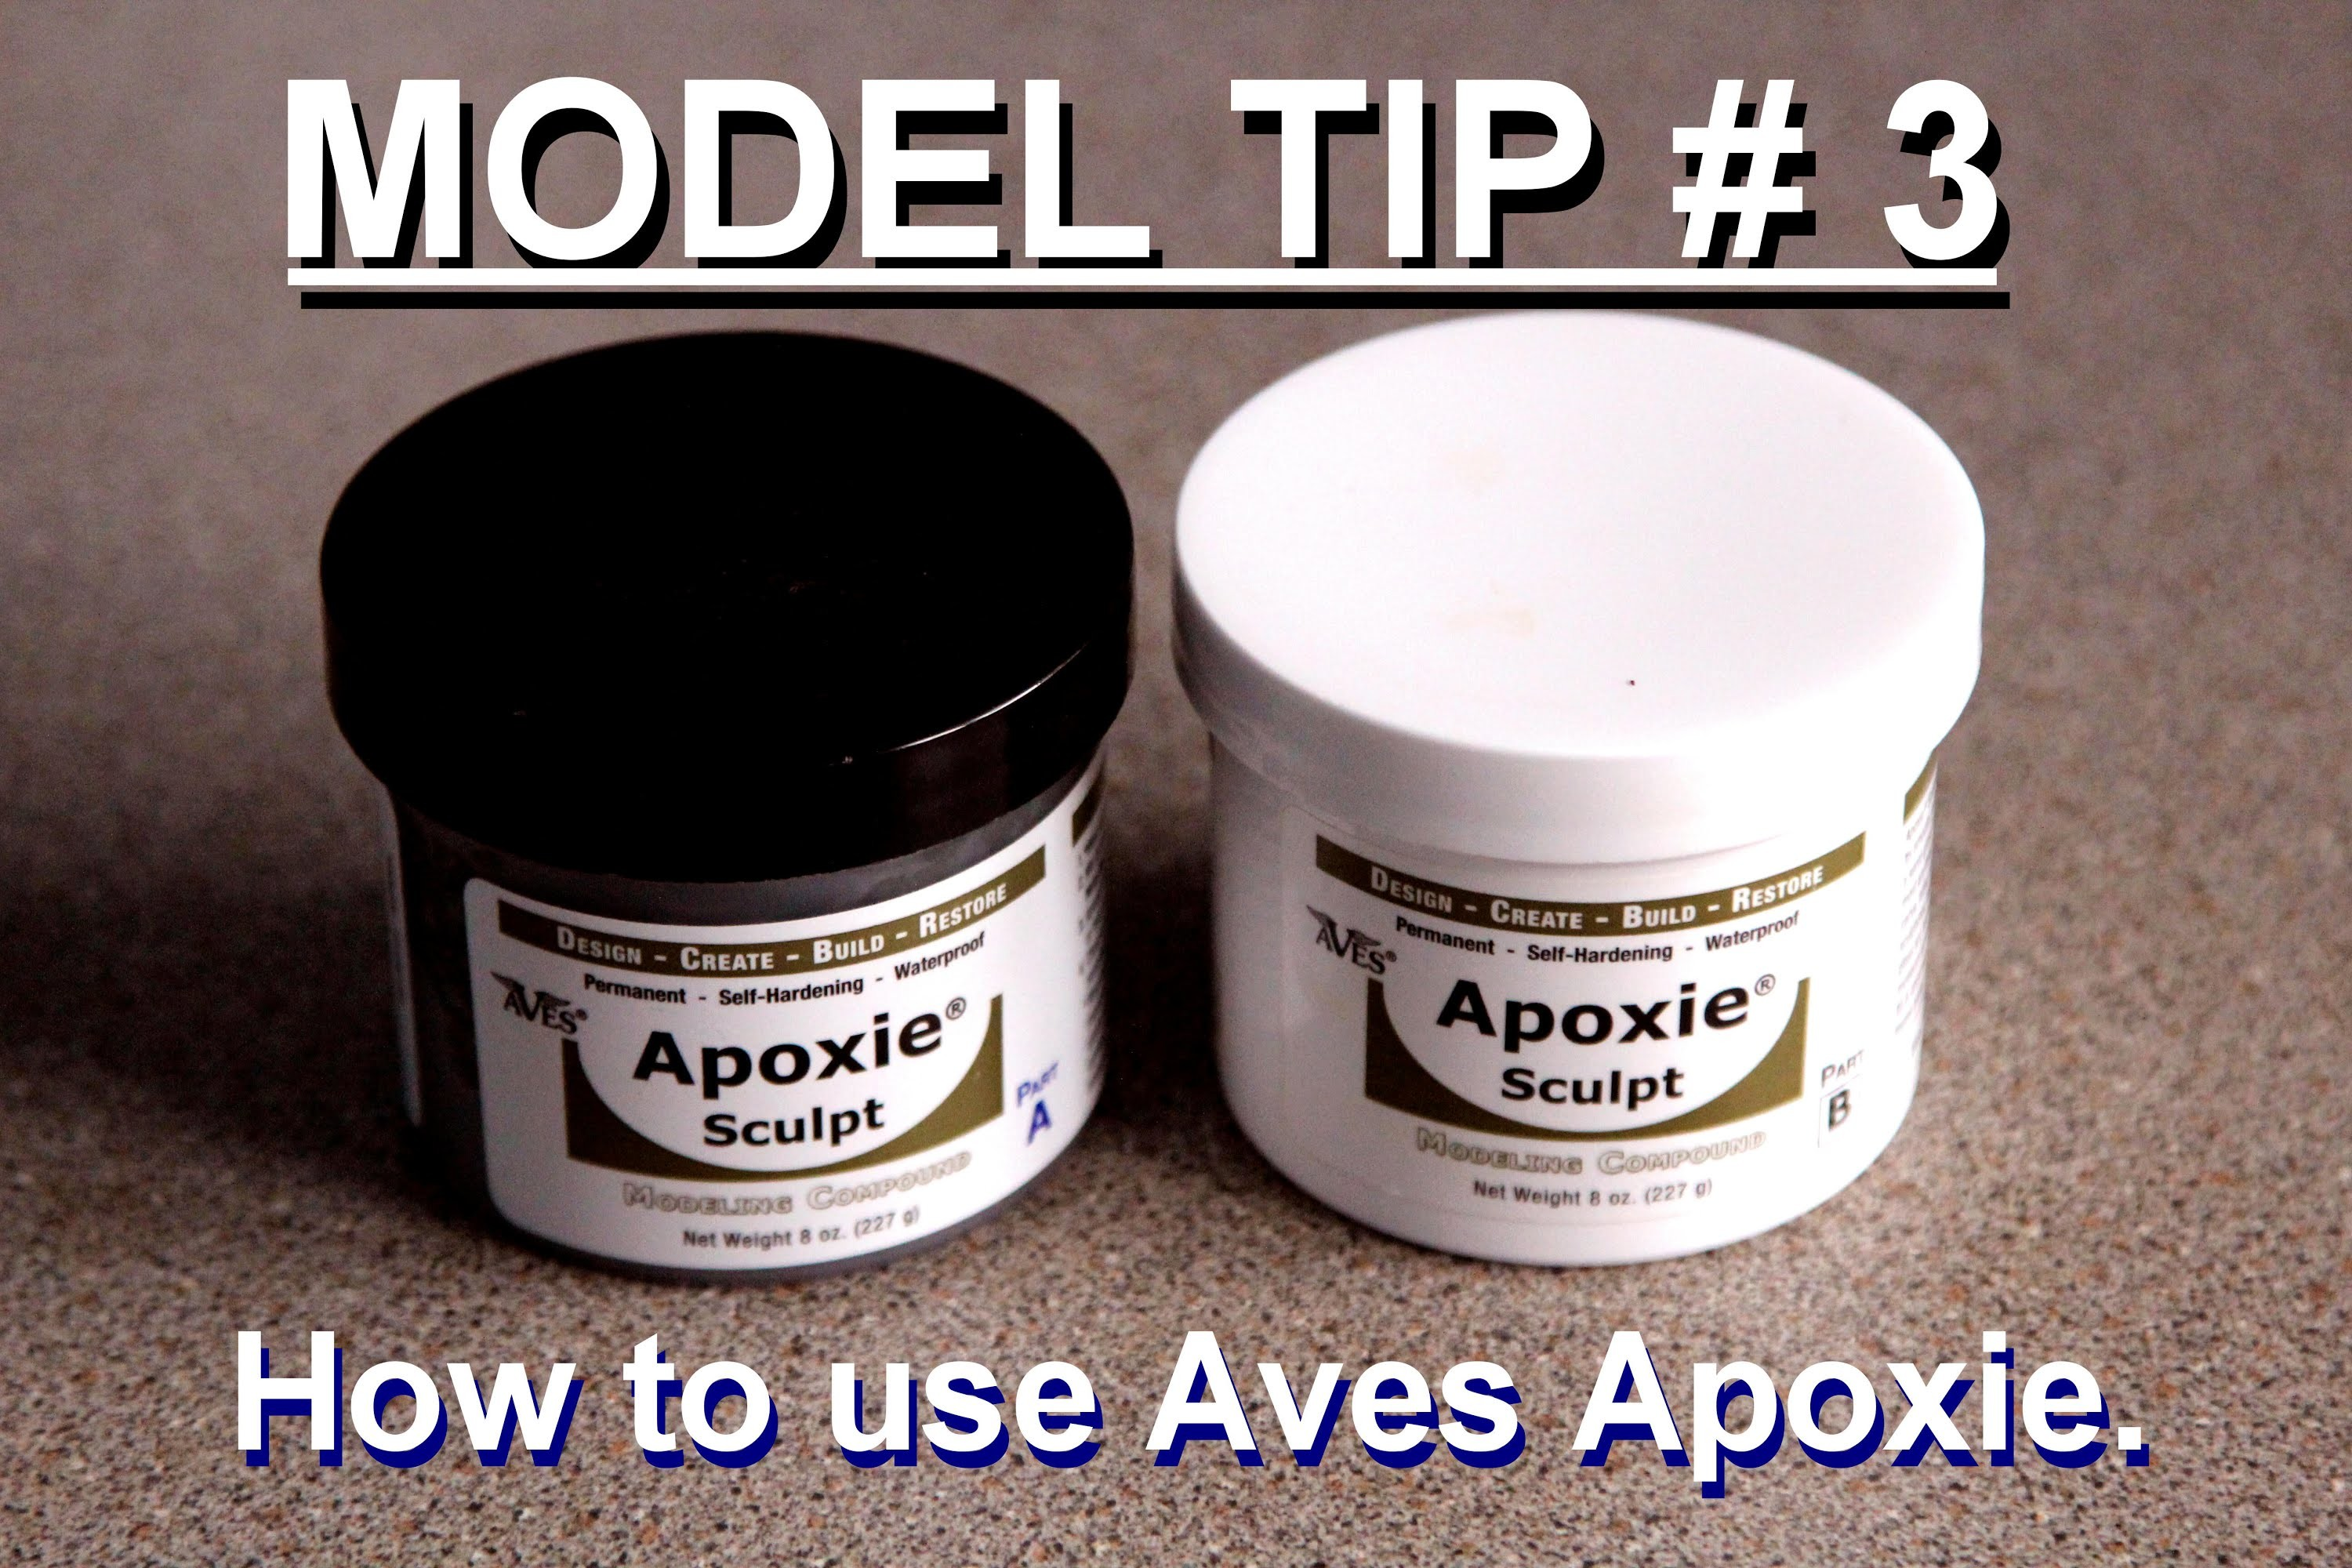 Modelling Tip # 3 How to use Aves Apoxie